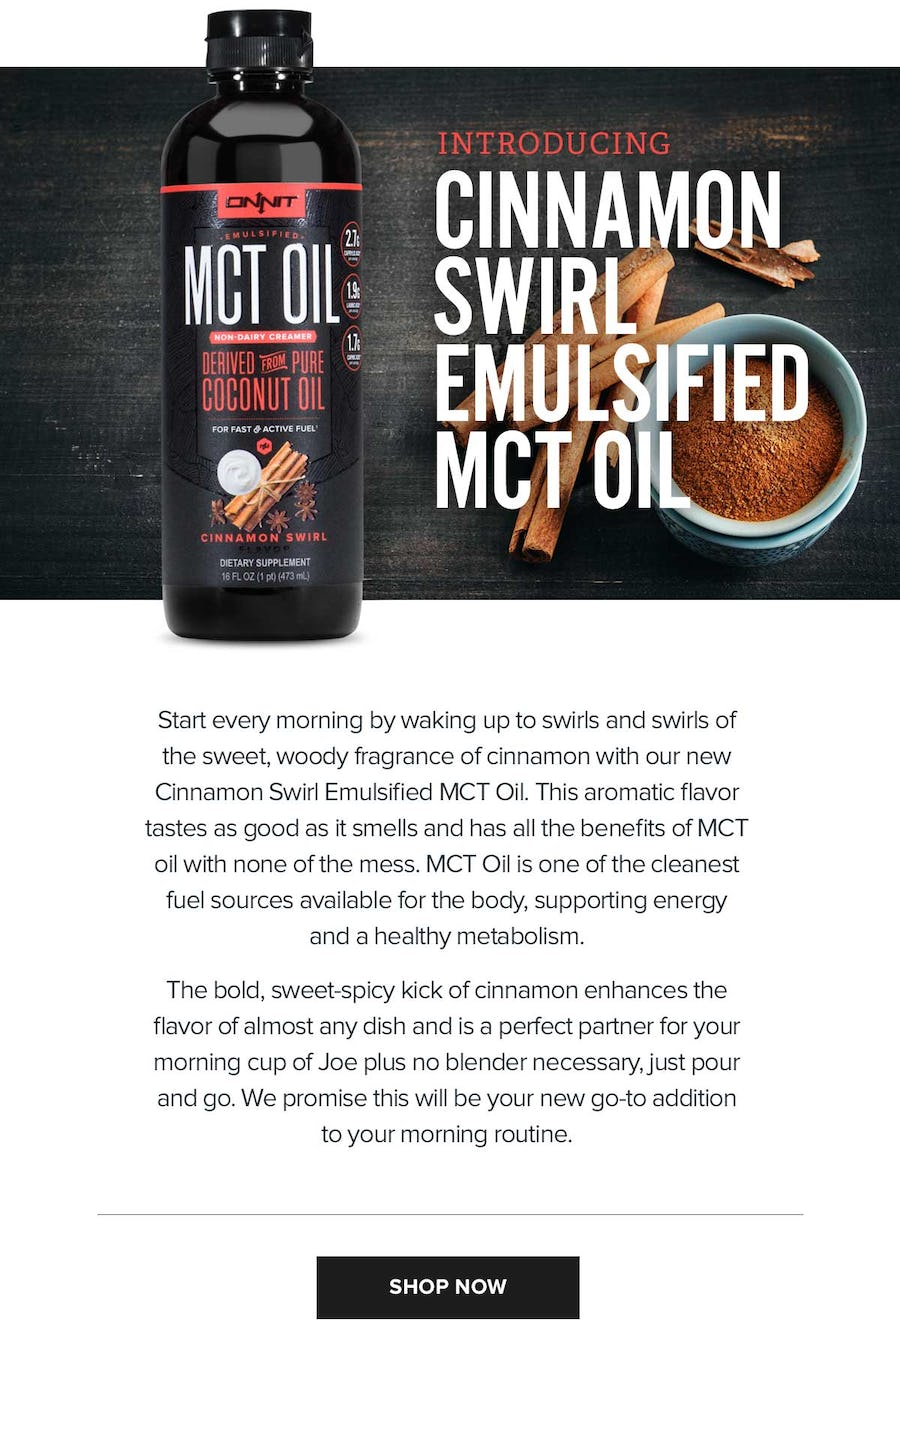 Introducing Cinnamon Swirl Emulsified MCT OIL Recipes